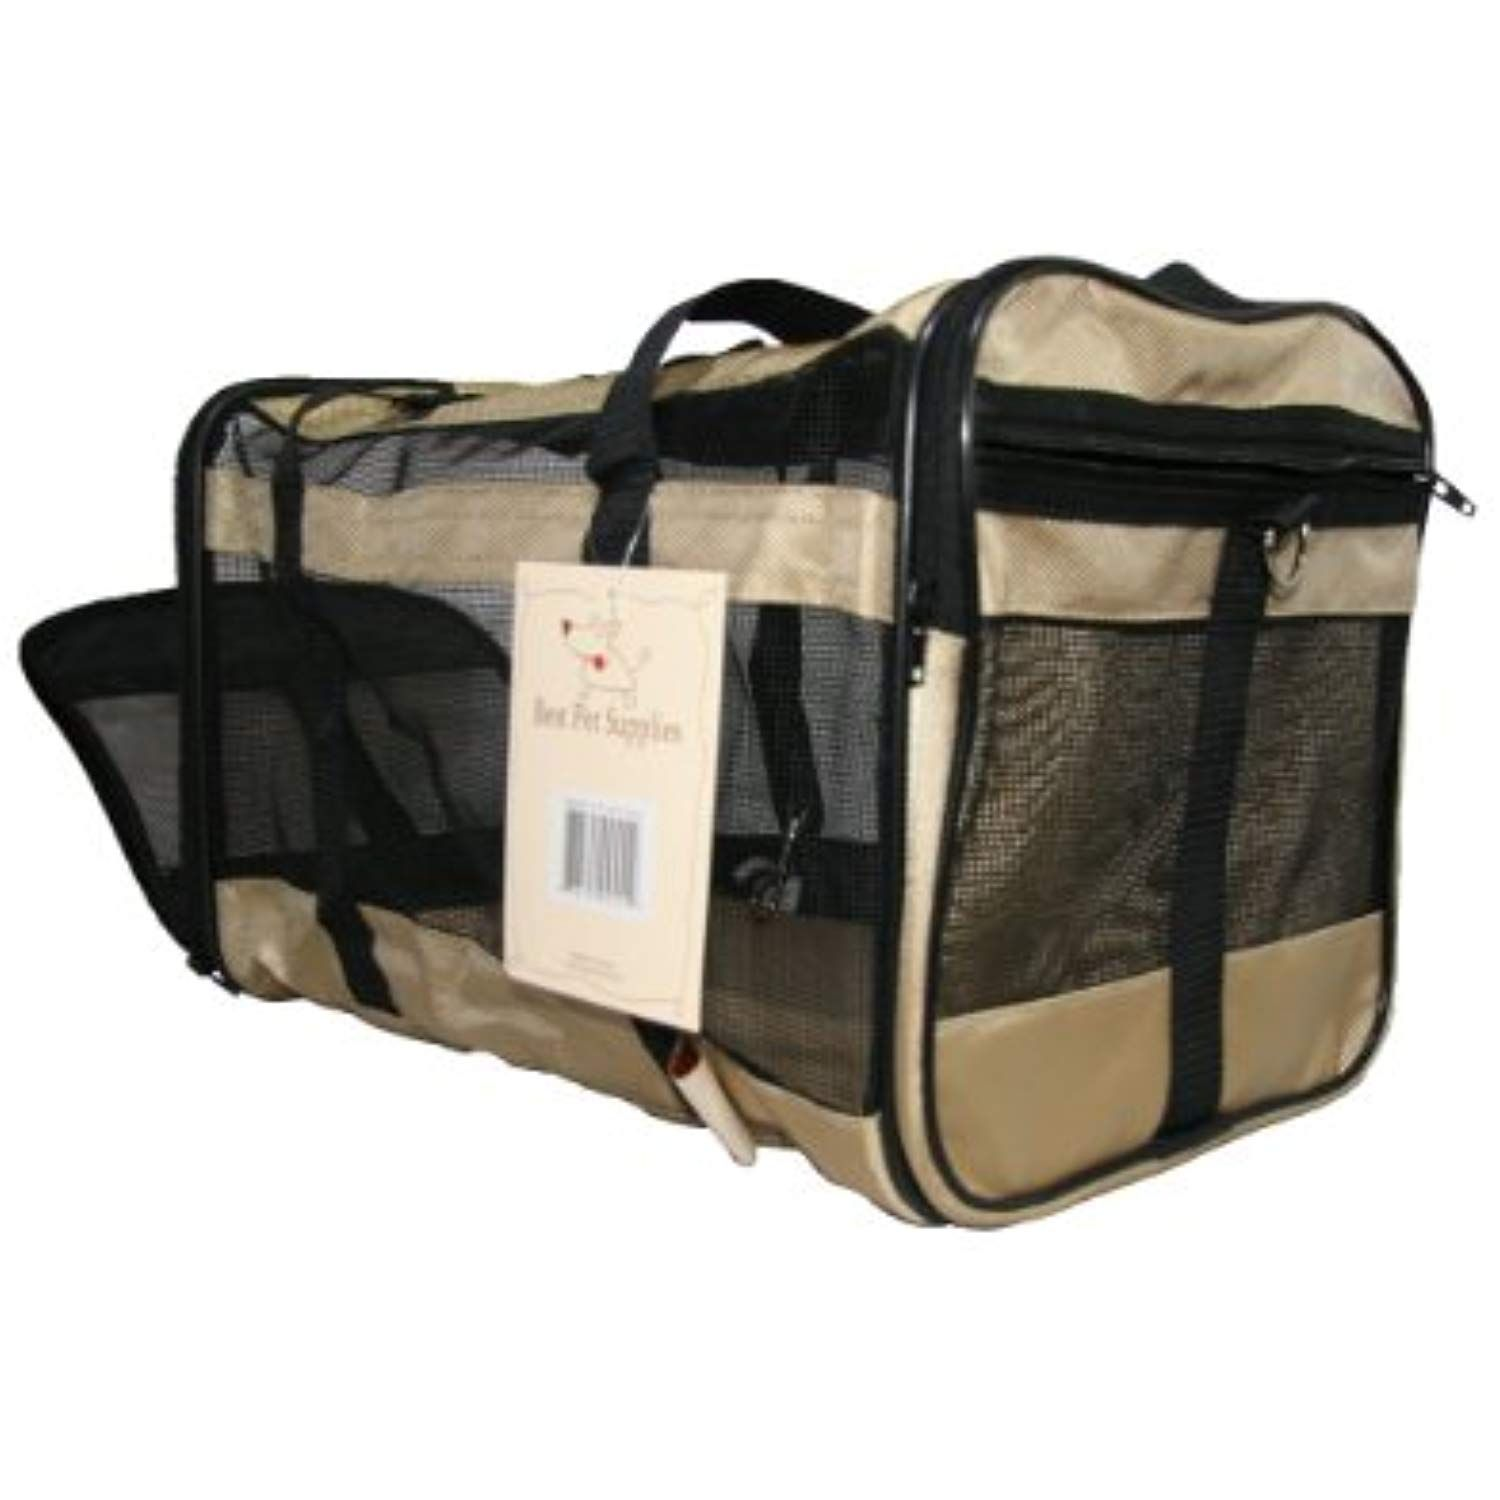 Airline Compliant Pet Carrier for Small Dogs Cats